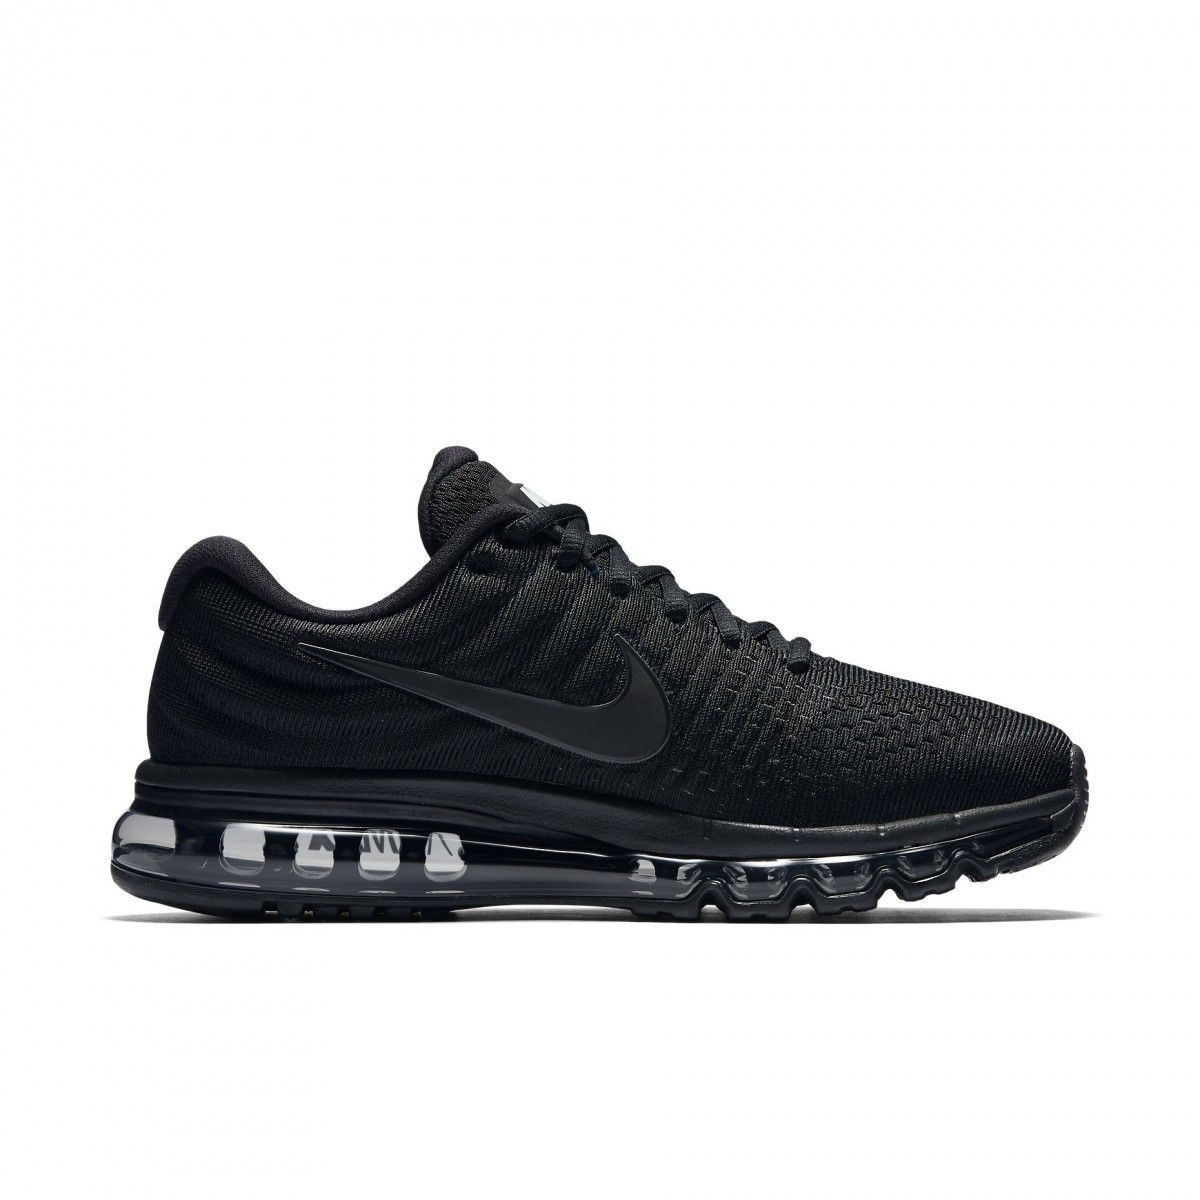 huge selection of 235e0 1a72f Baskets Nike Air Max 2017 Noir Homme - Taille   42 43 44 45 46 40 41 47